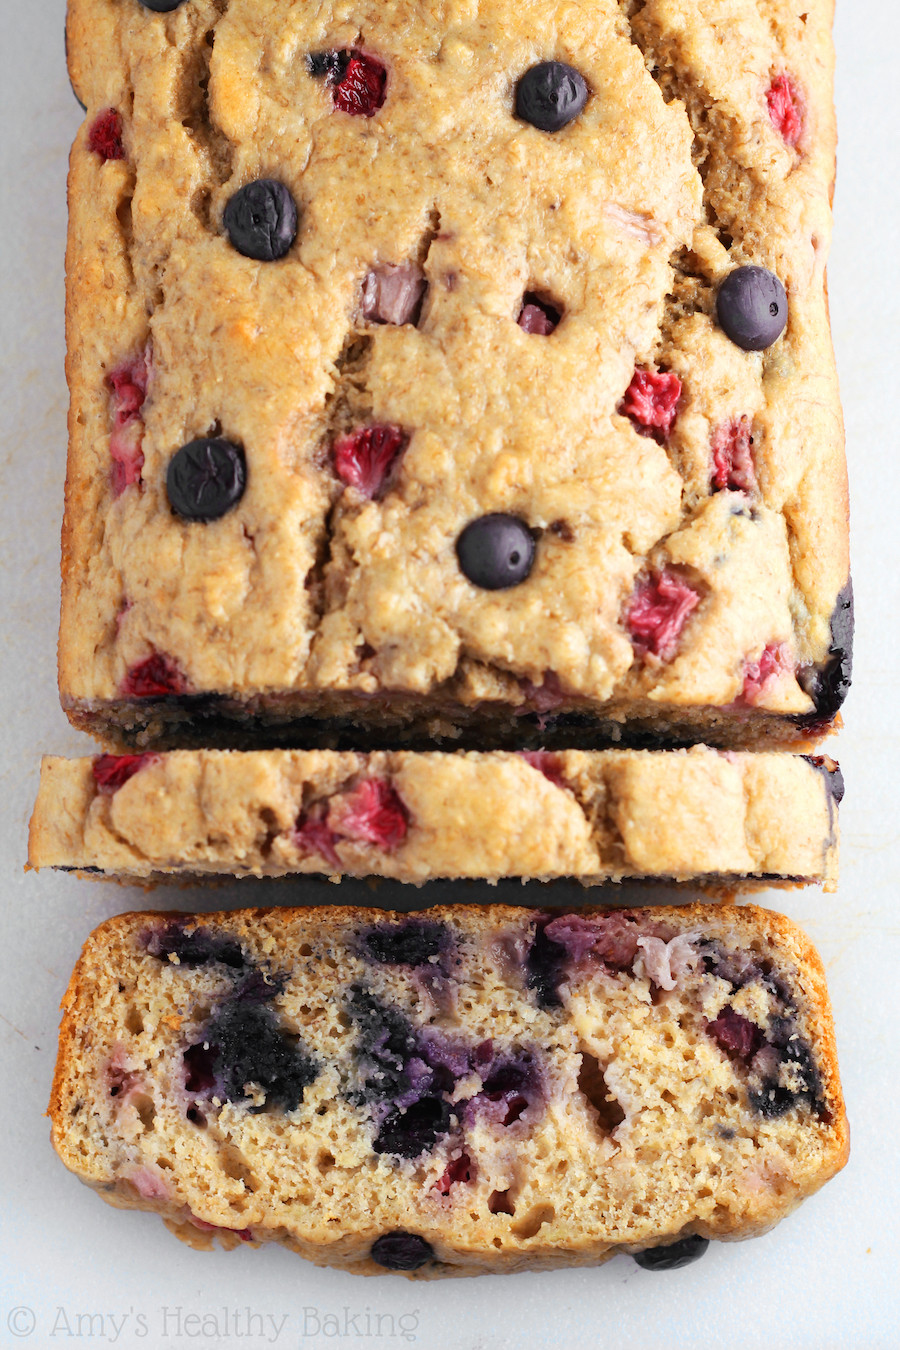 Healthy Blueberry Bread Recipes  Whole Wheat Strawberry Blueberry Banana Bread Recipe